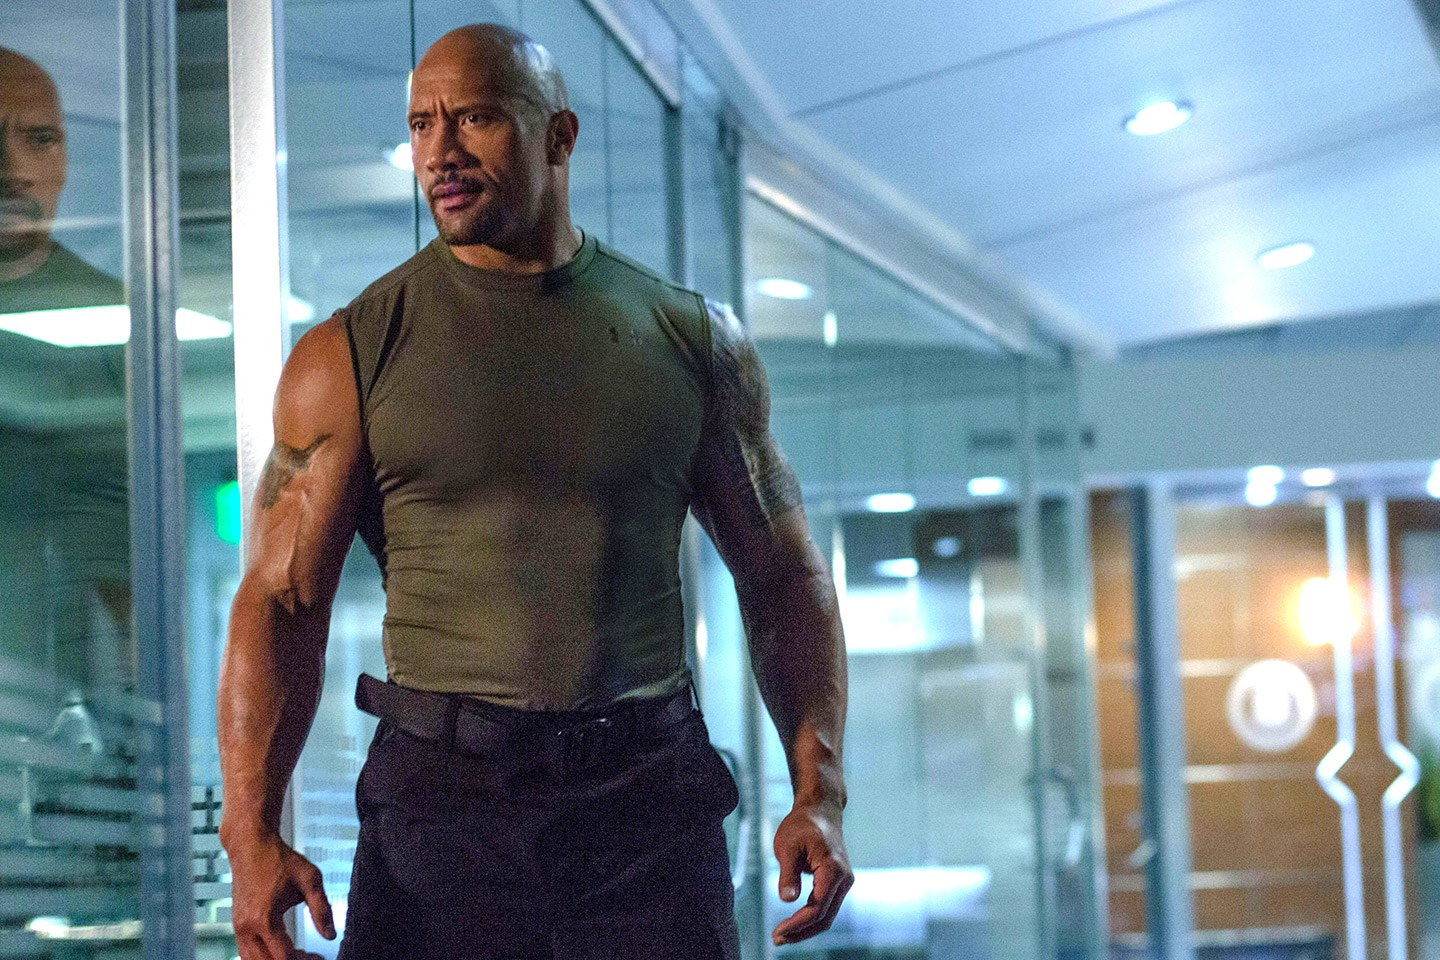 Fast and Furious 9 : Dwayne Johnson, écarté des castings à cause de Vin Diesel ?